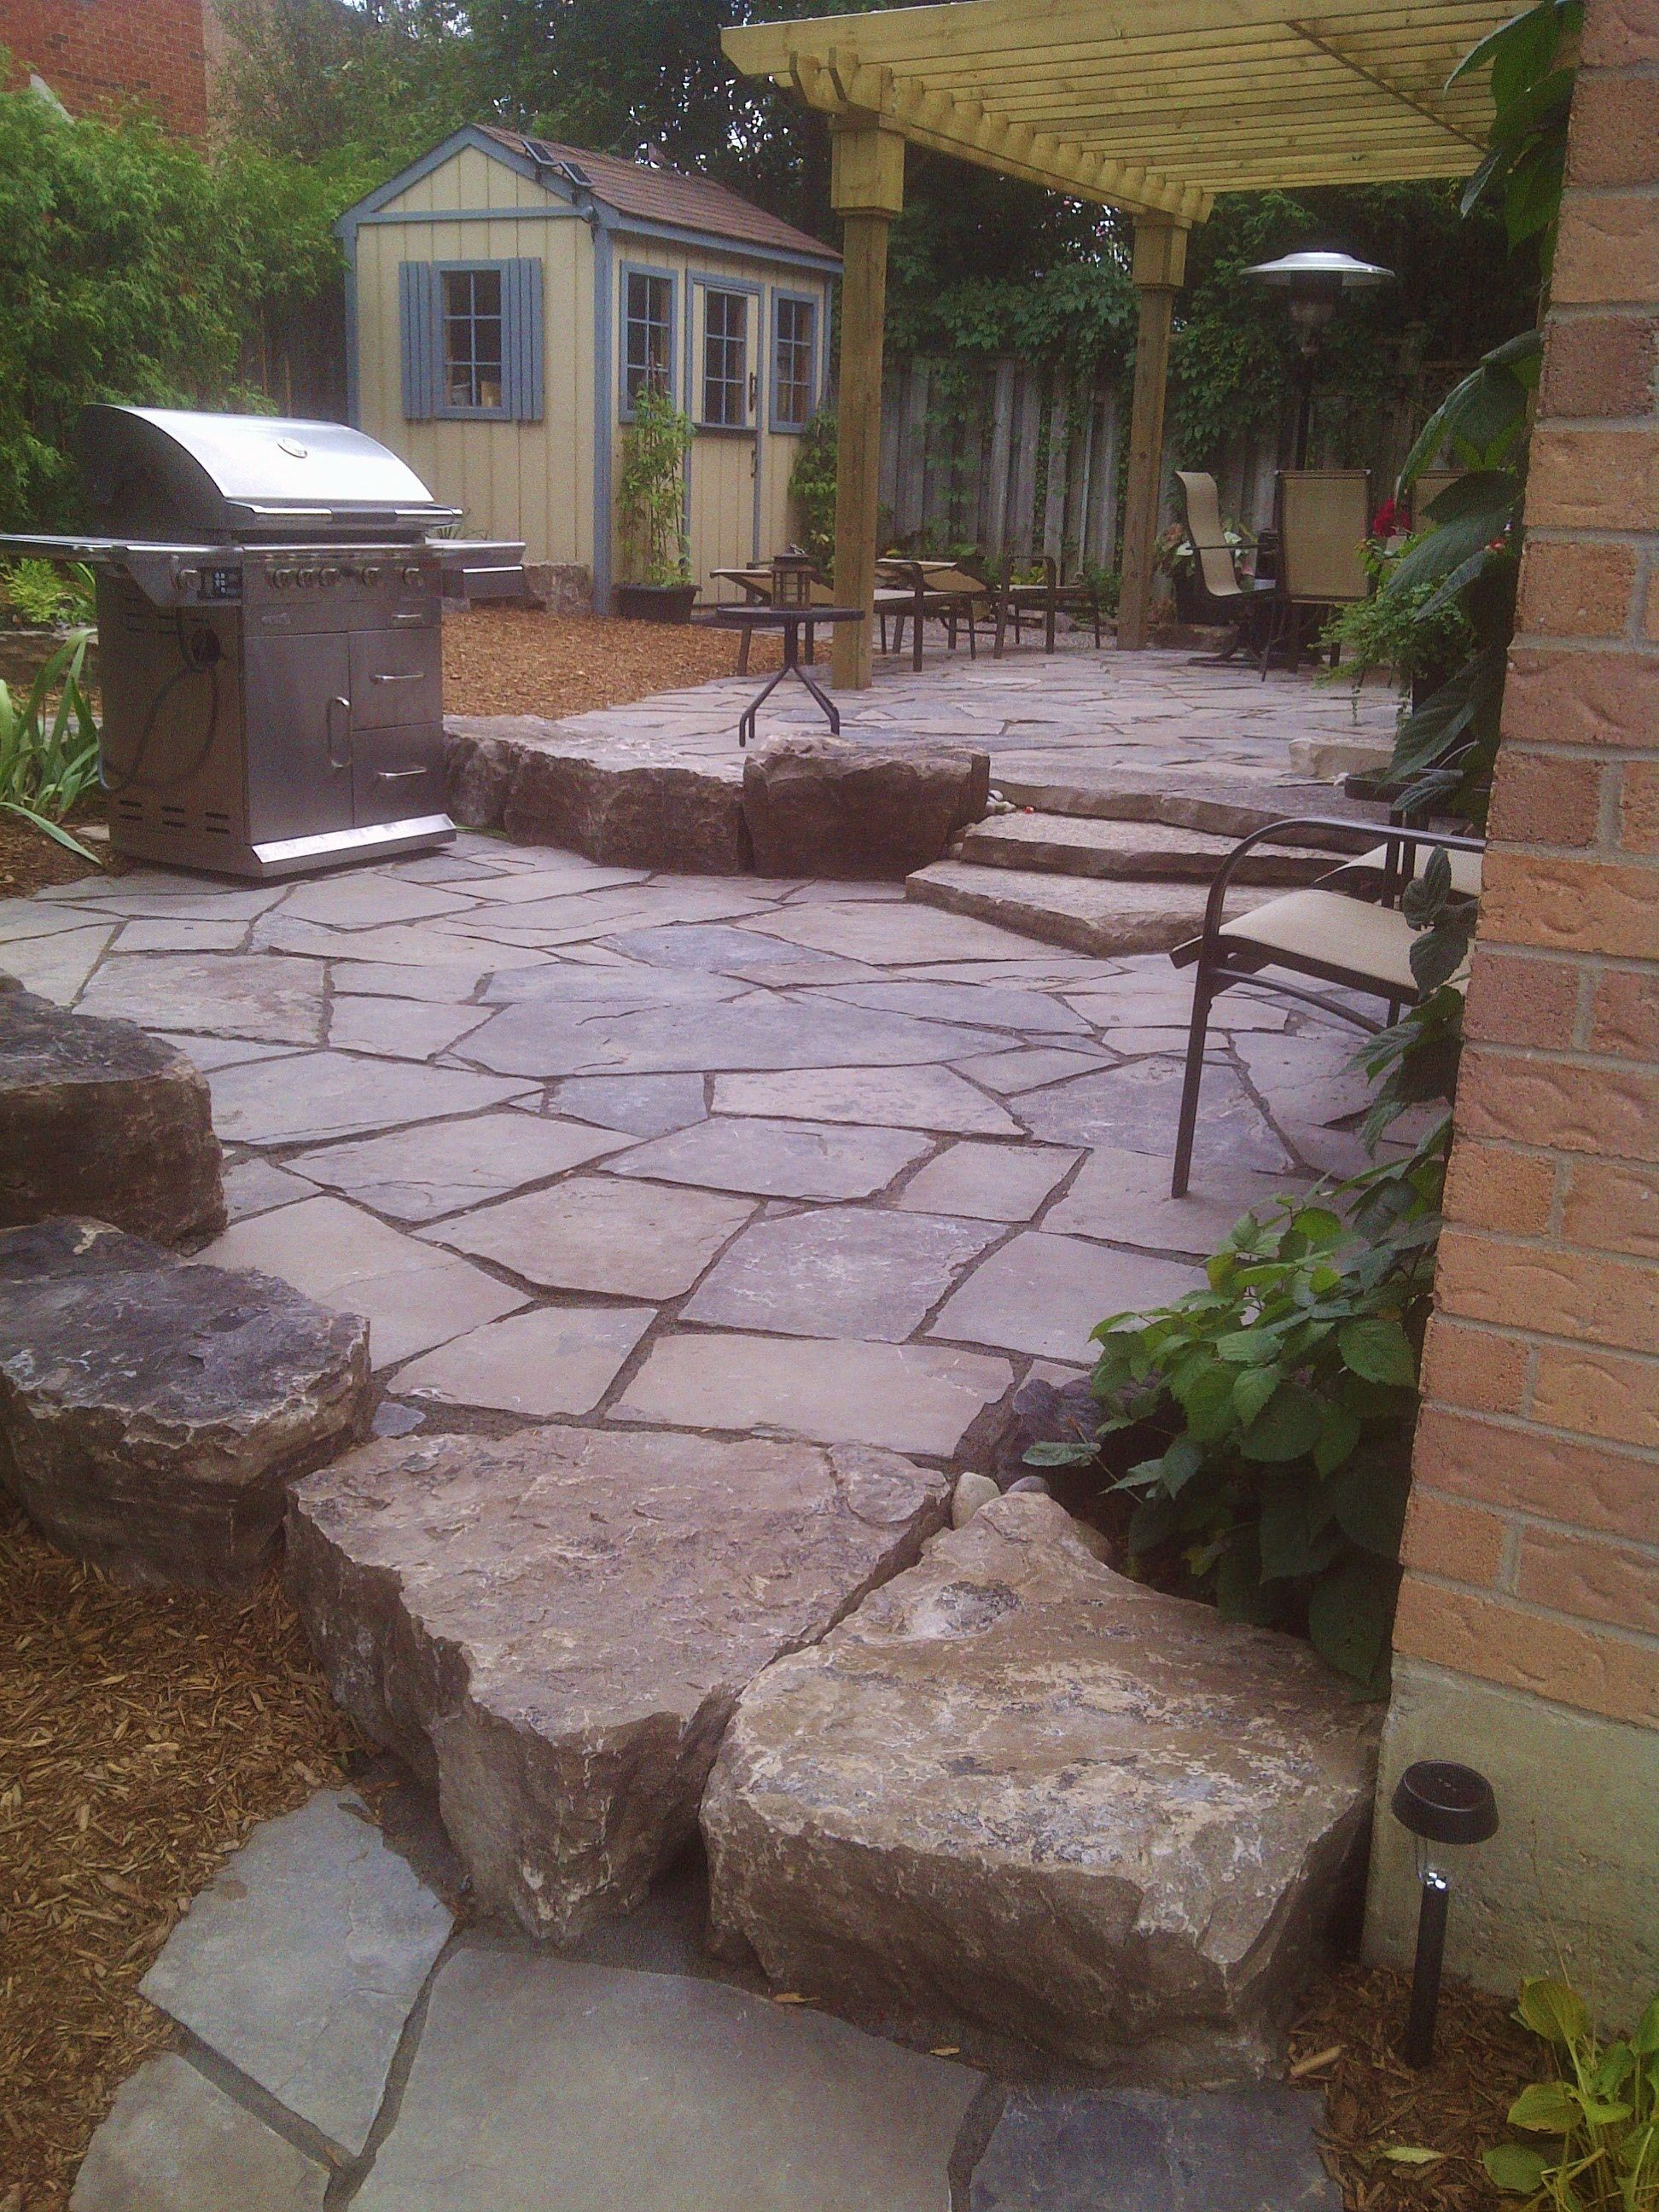 flagstone patio new rajasweetshouston patios of lovely kitchens outdoor houston stone awesome